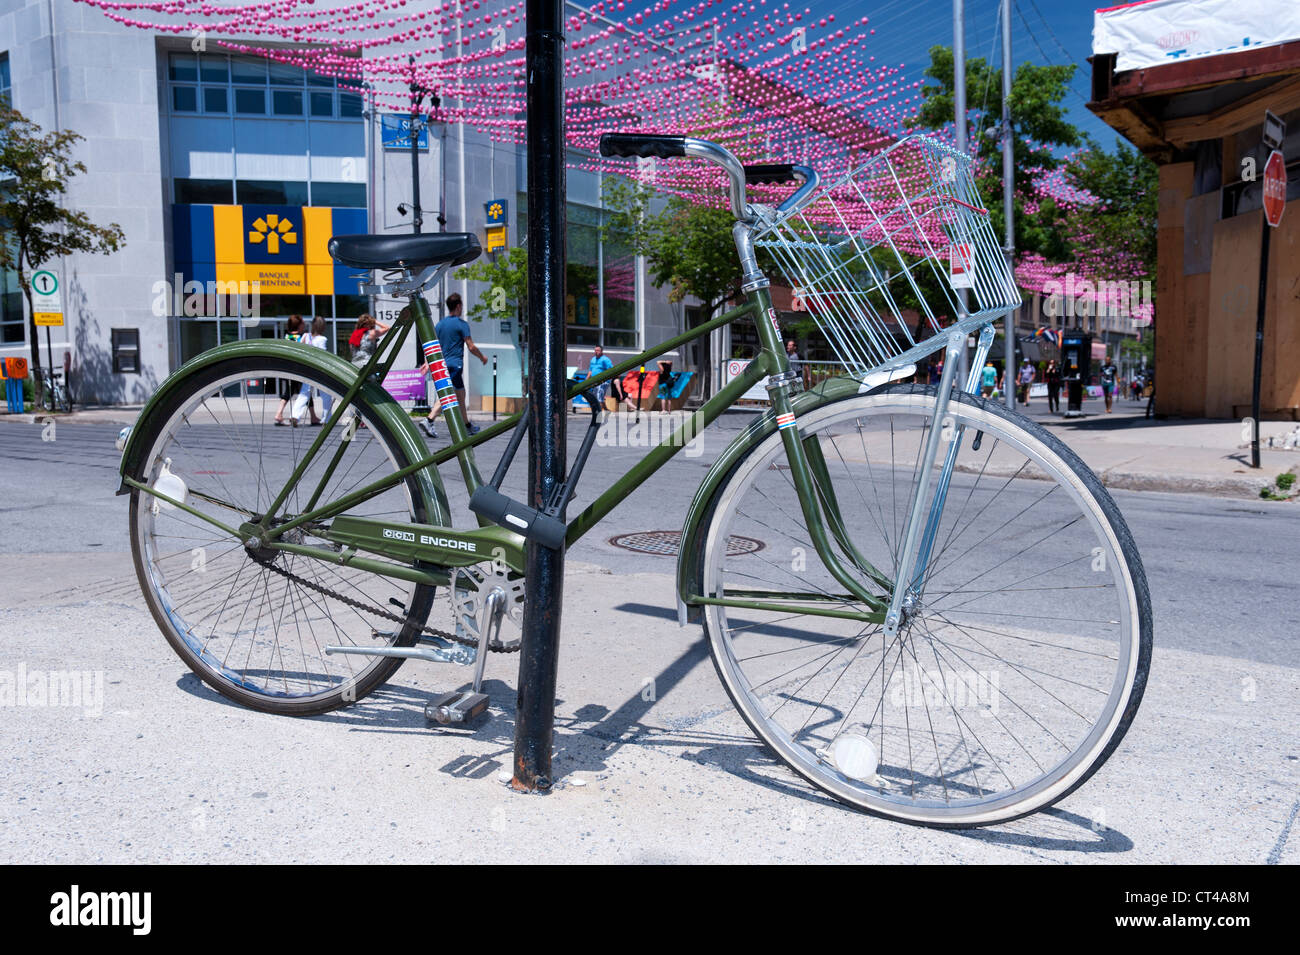 Green bicycle locked to a post in the Gay village , Montreal, province of Quebec, Canada. - Stock Image